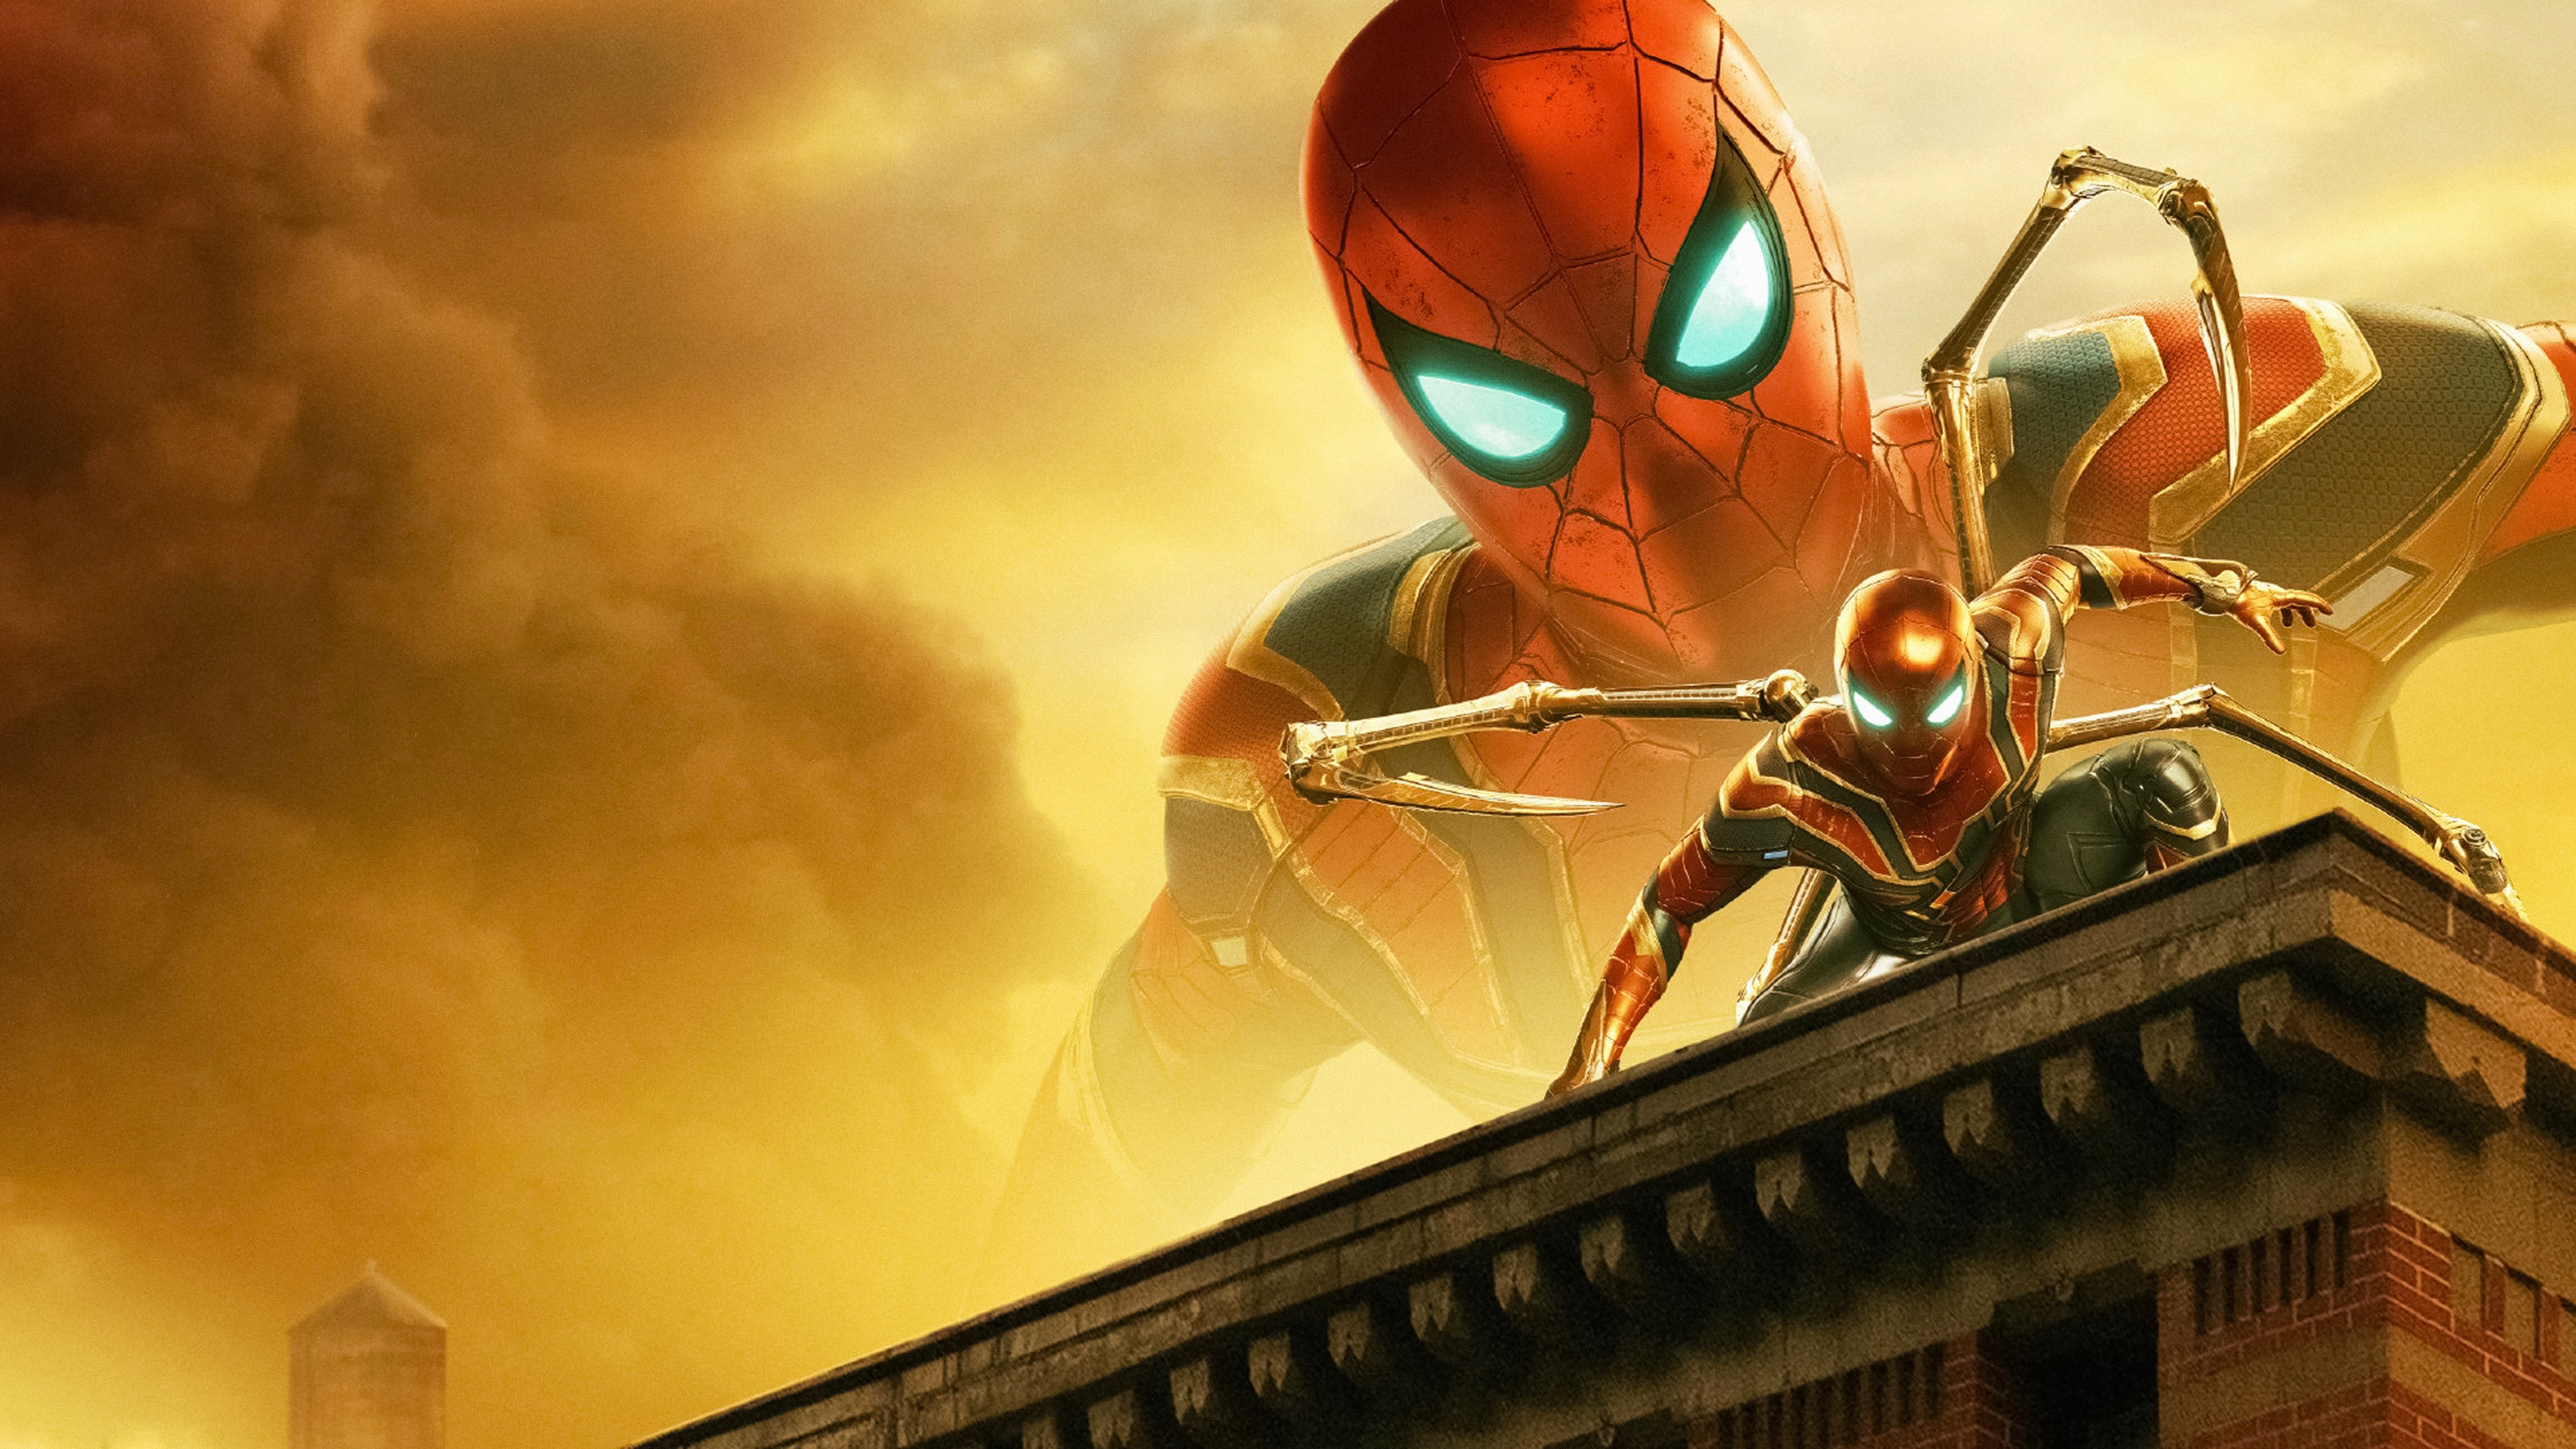 Iron Spider on the Iron building.jpg